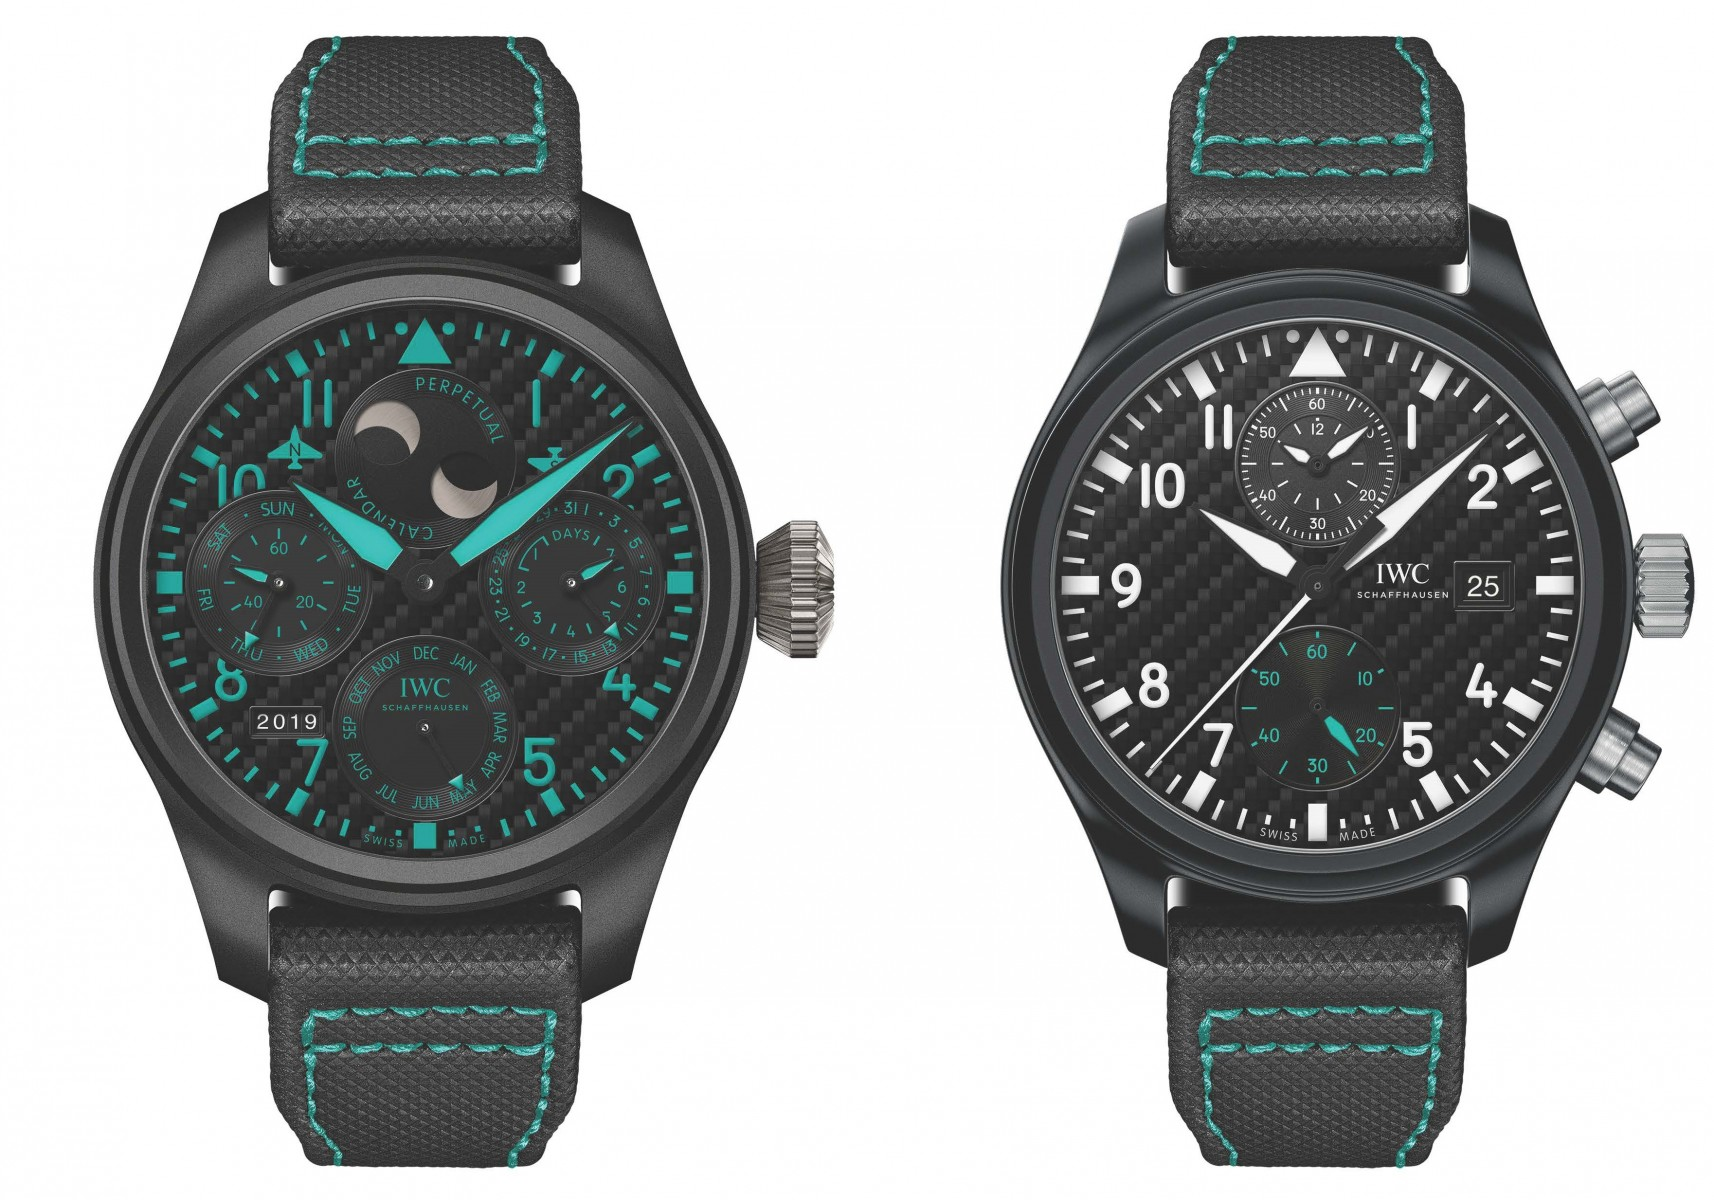 Iwc Brings The Formula One World Champions To Your Wrist